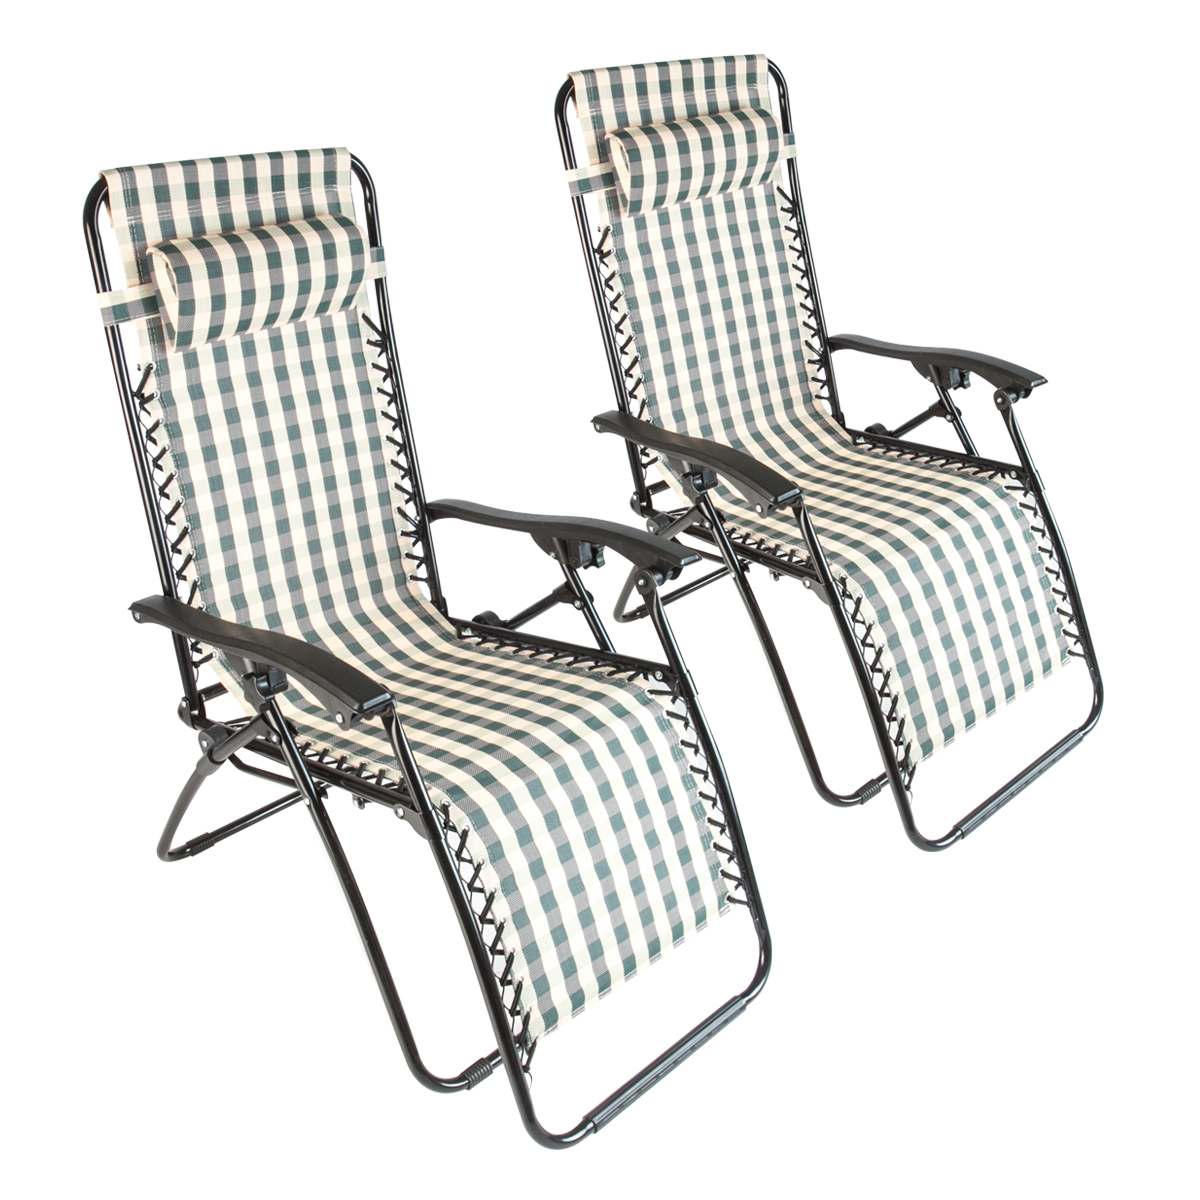 Lightweight Folding Beach Lounge Chair 2 Beach Zero Gravity Folding Lounge Chair Recliner Patio